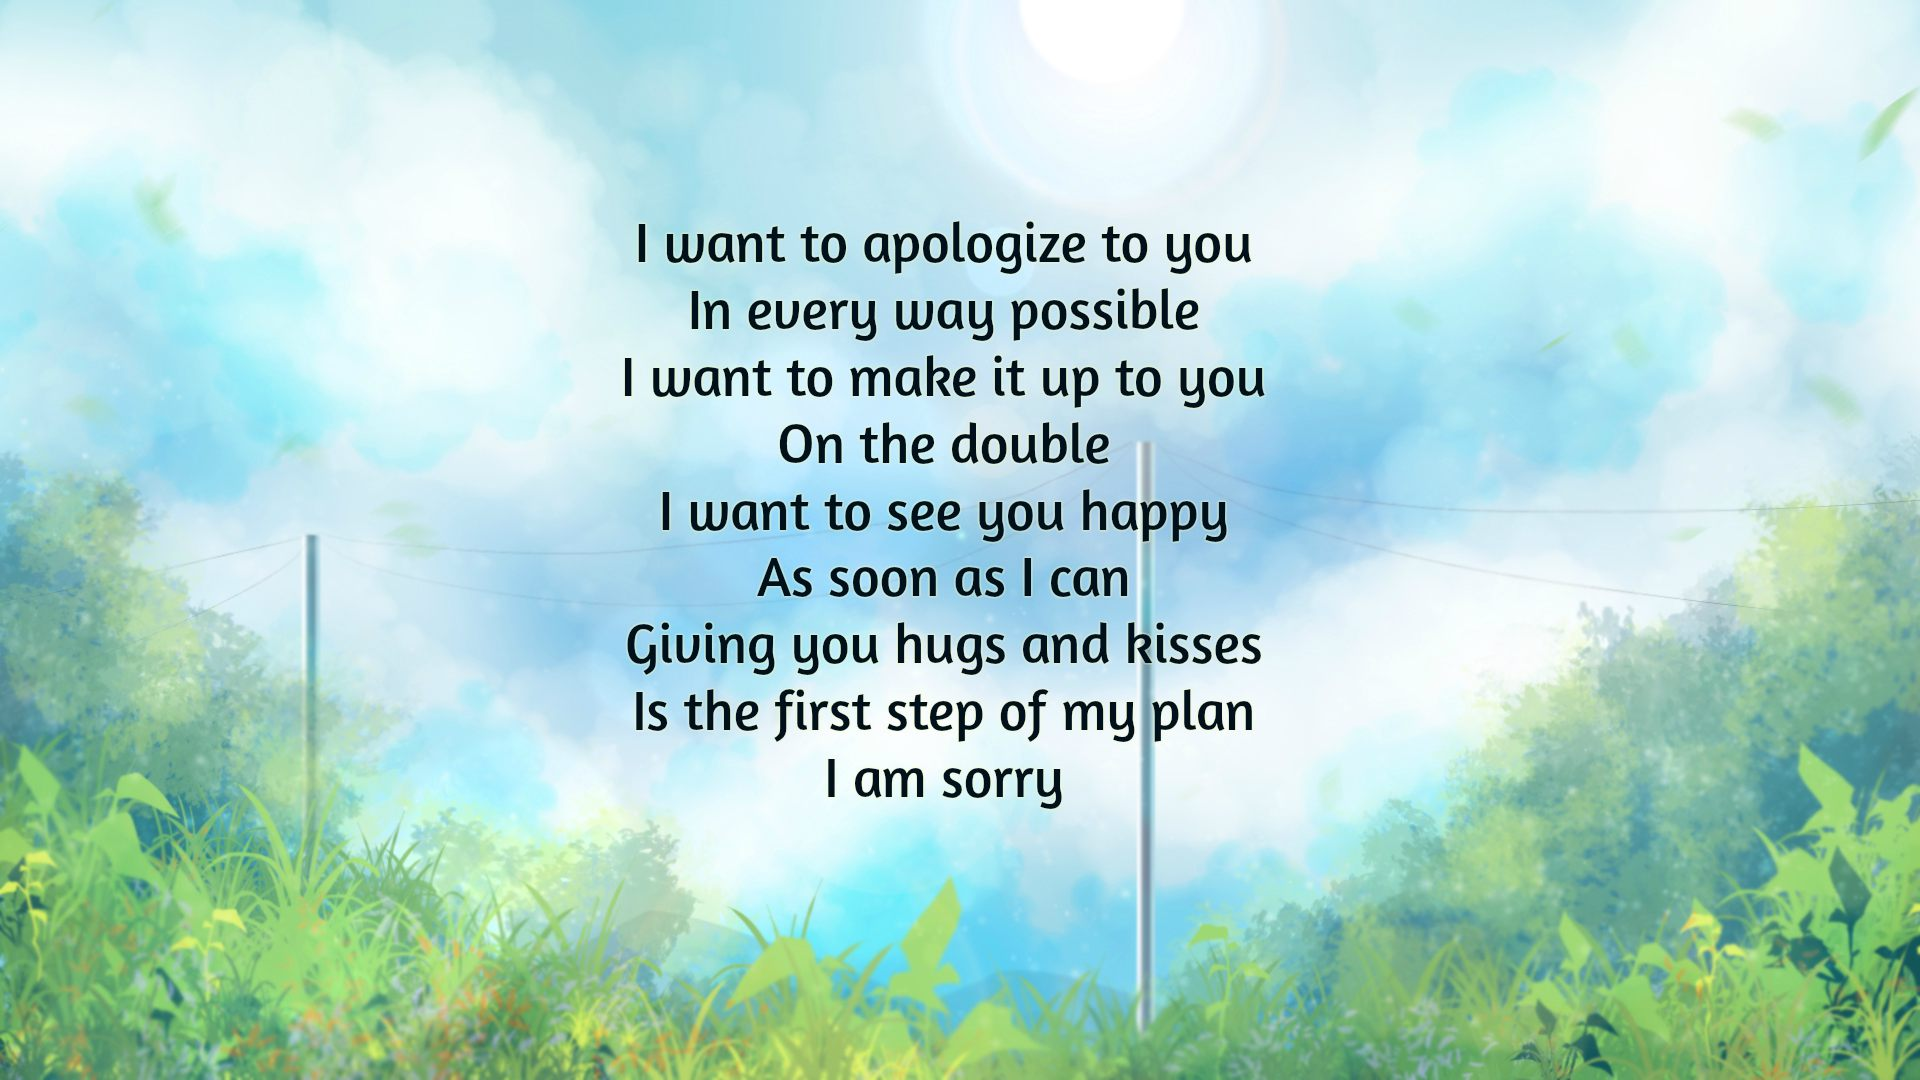 I'm Sorry Poems | Text And Image Poems | QuoteReel